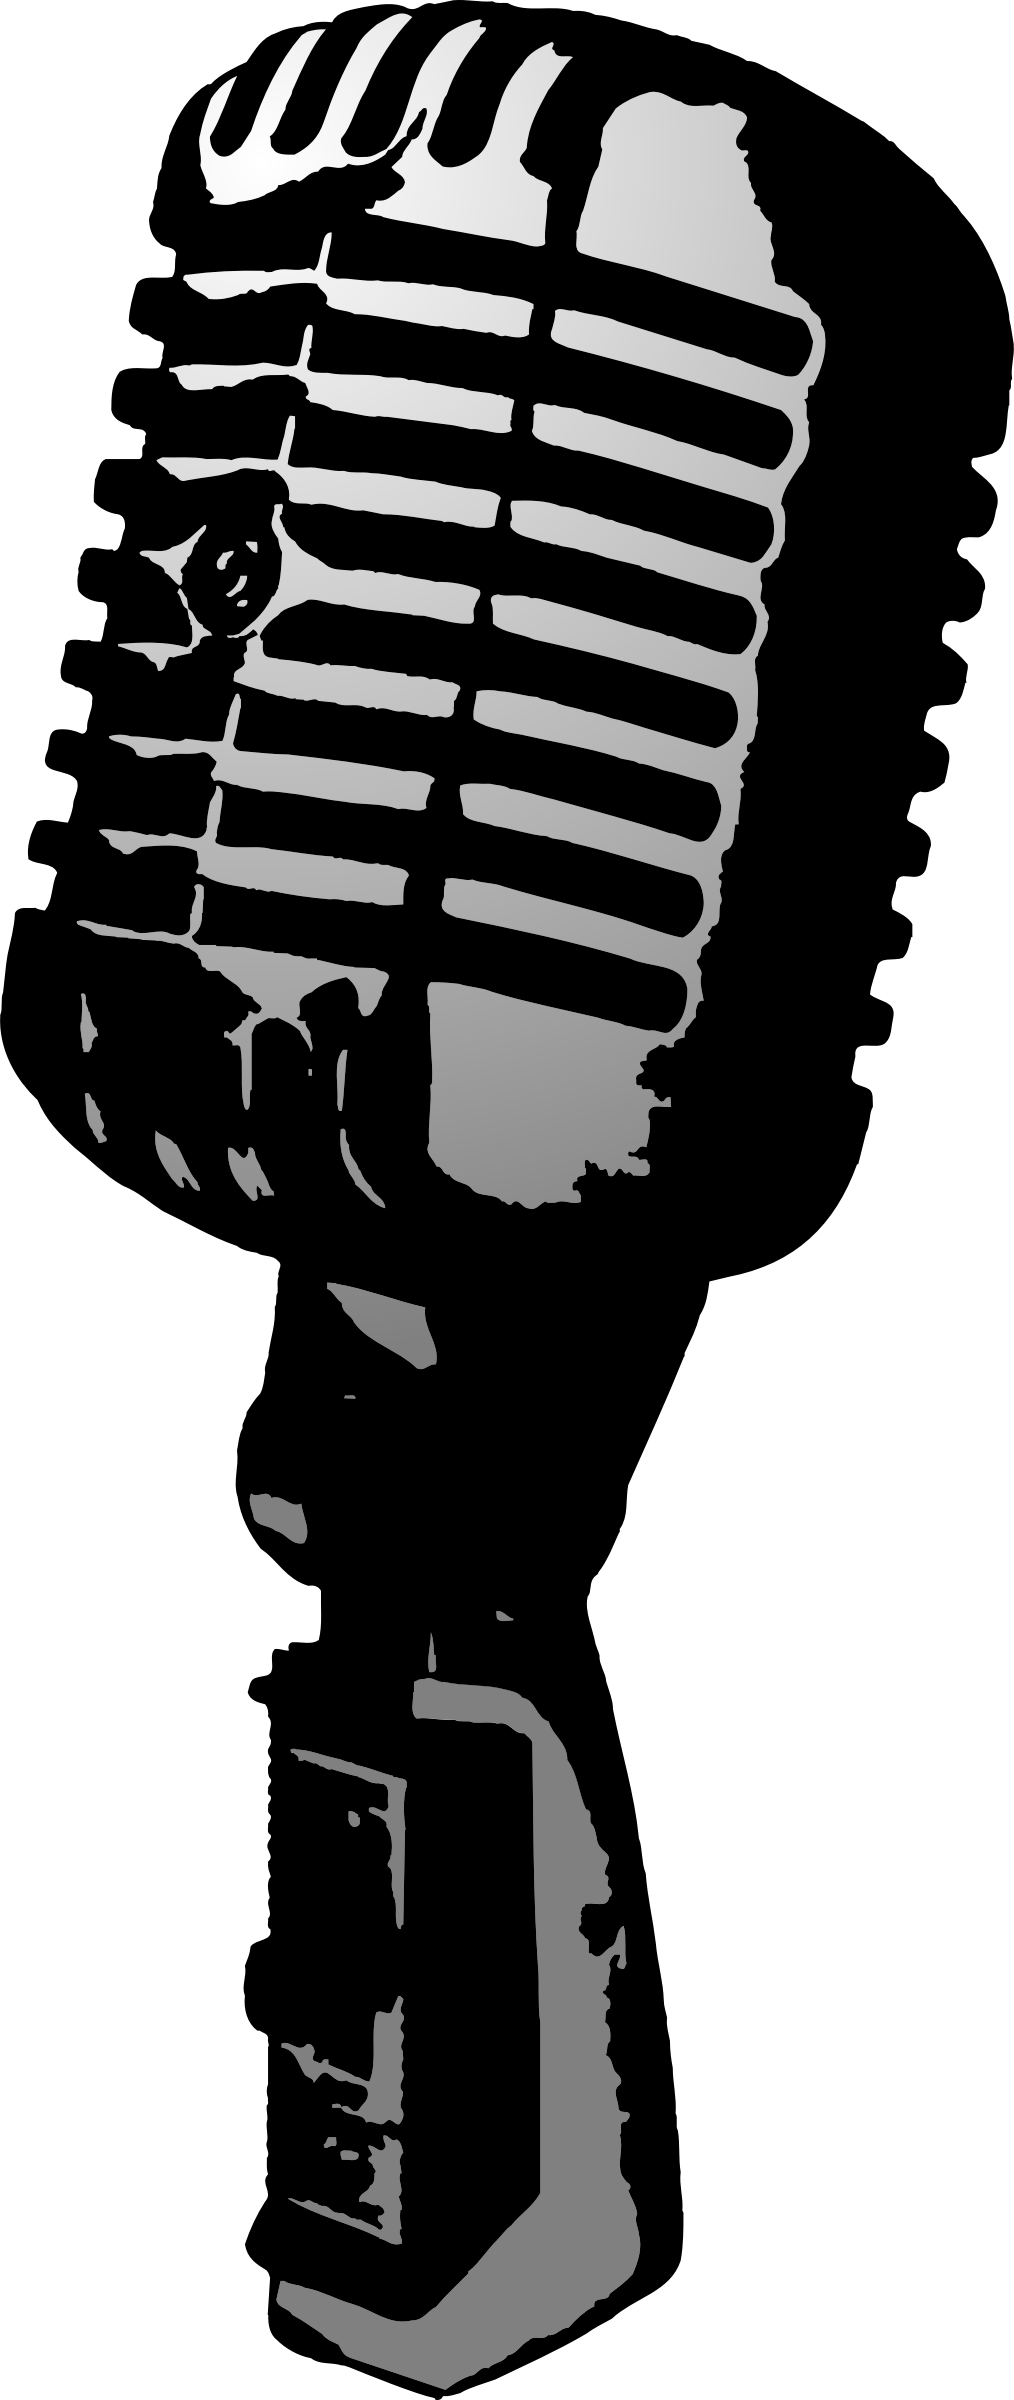 Microphone clipart audio. Index of wp content